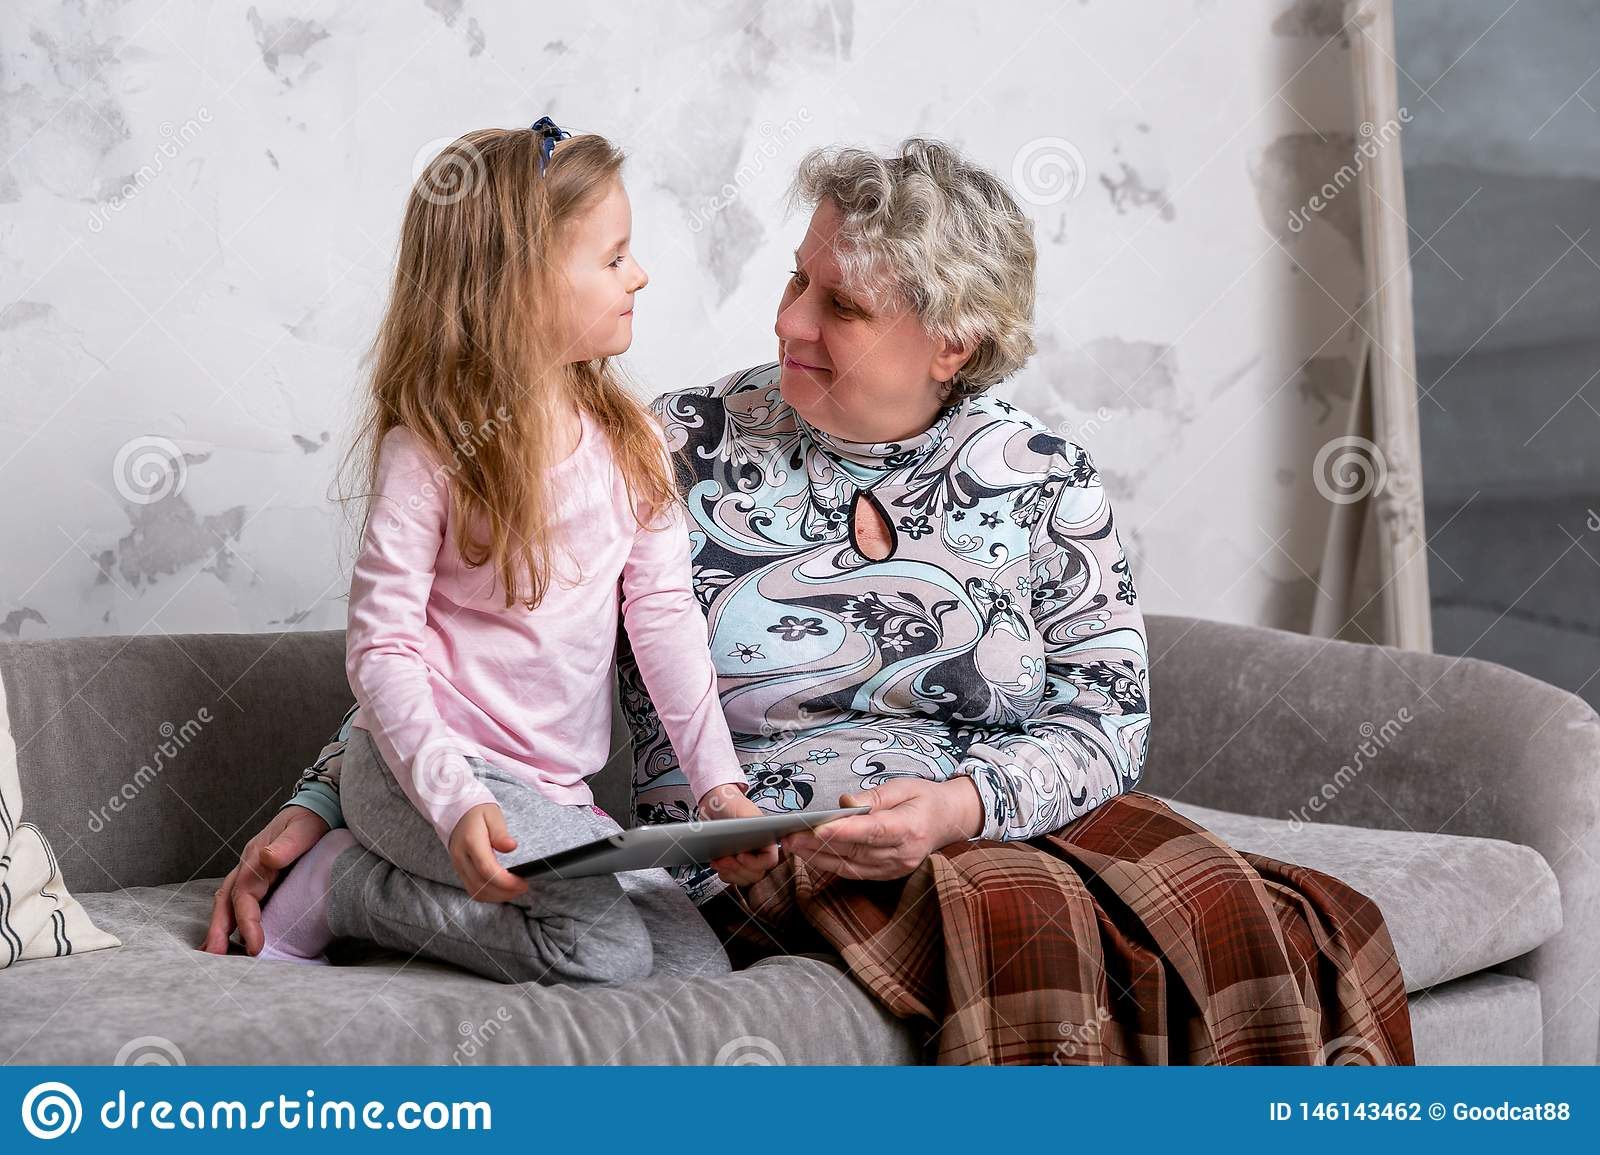 Grandmother and her little granddaughter are watching movies together and playing on the device while sitting on the sofa.